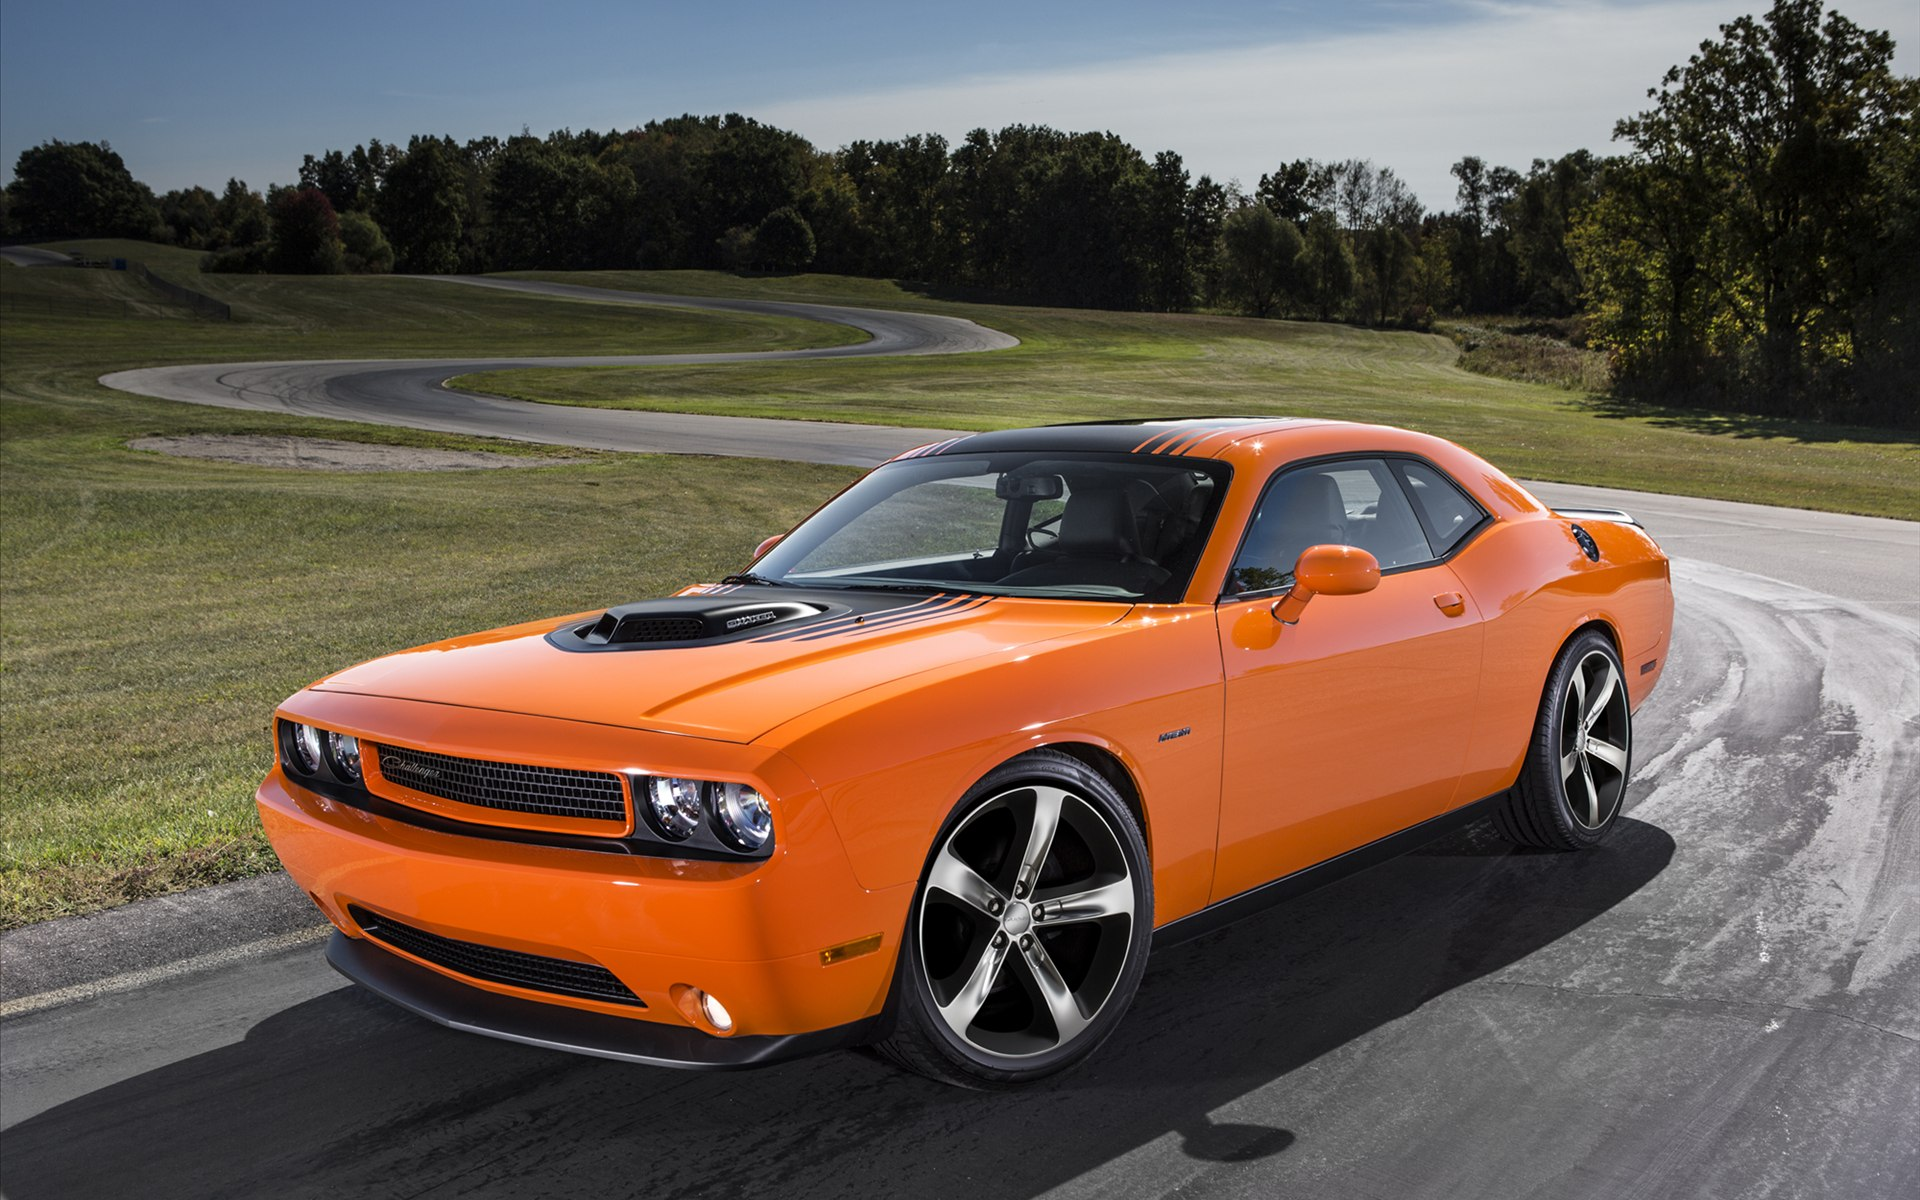 Awesome Orange Dodge Challenger RT Shaker 2014 Photo Picture Image